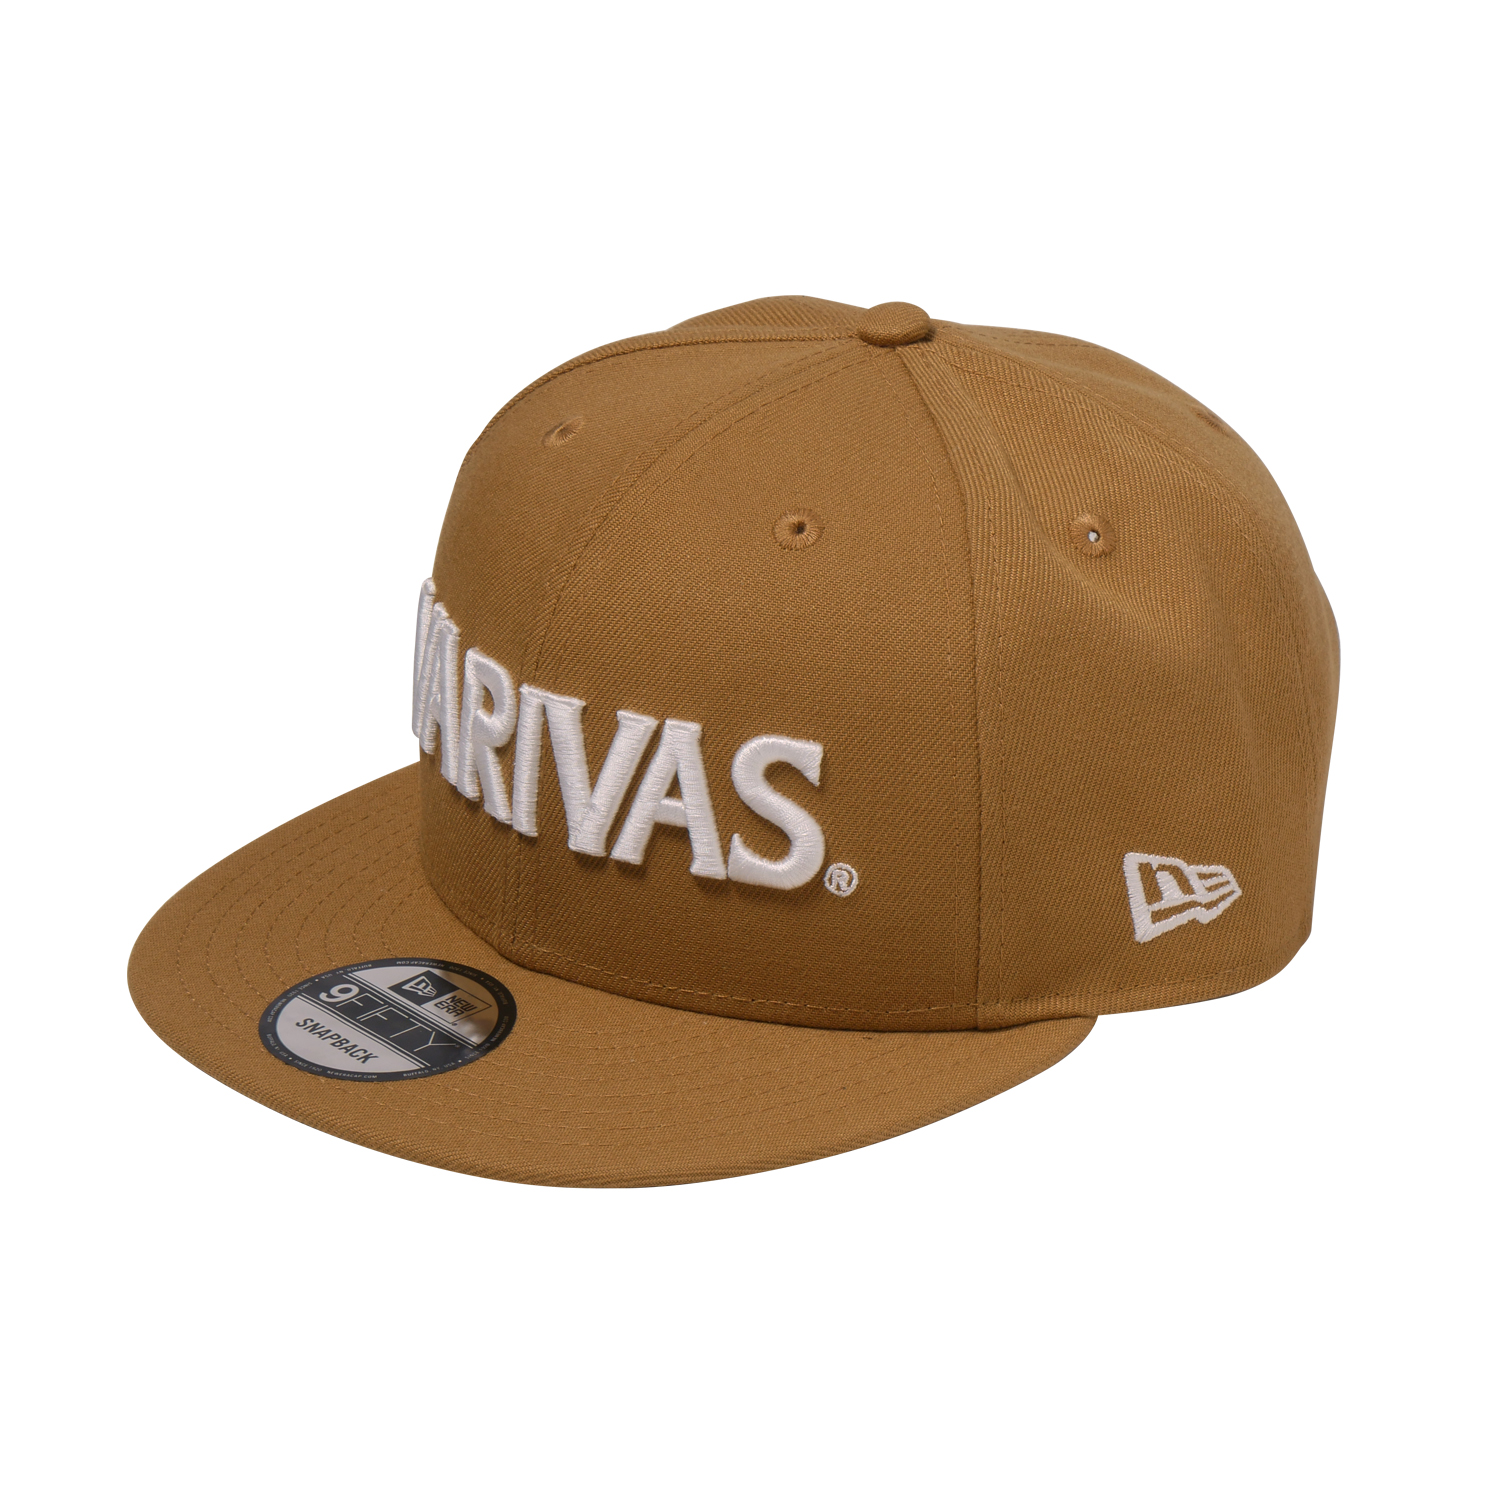 9FIFTY Snap Back Cap<br>[VAC-61]